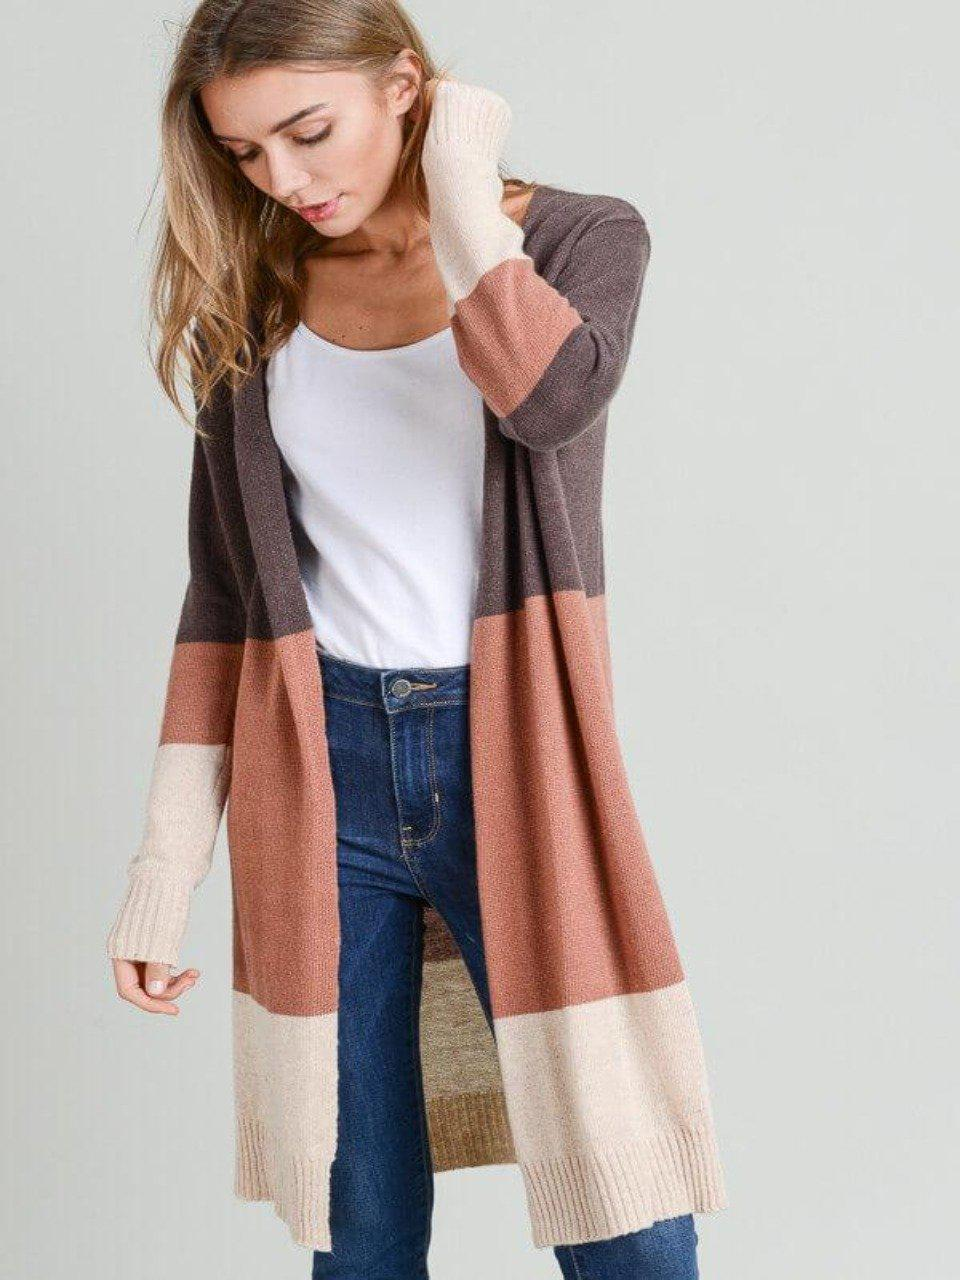 The Trio Cardigan